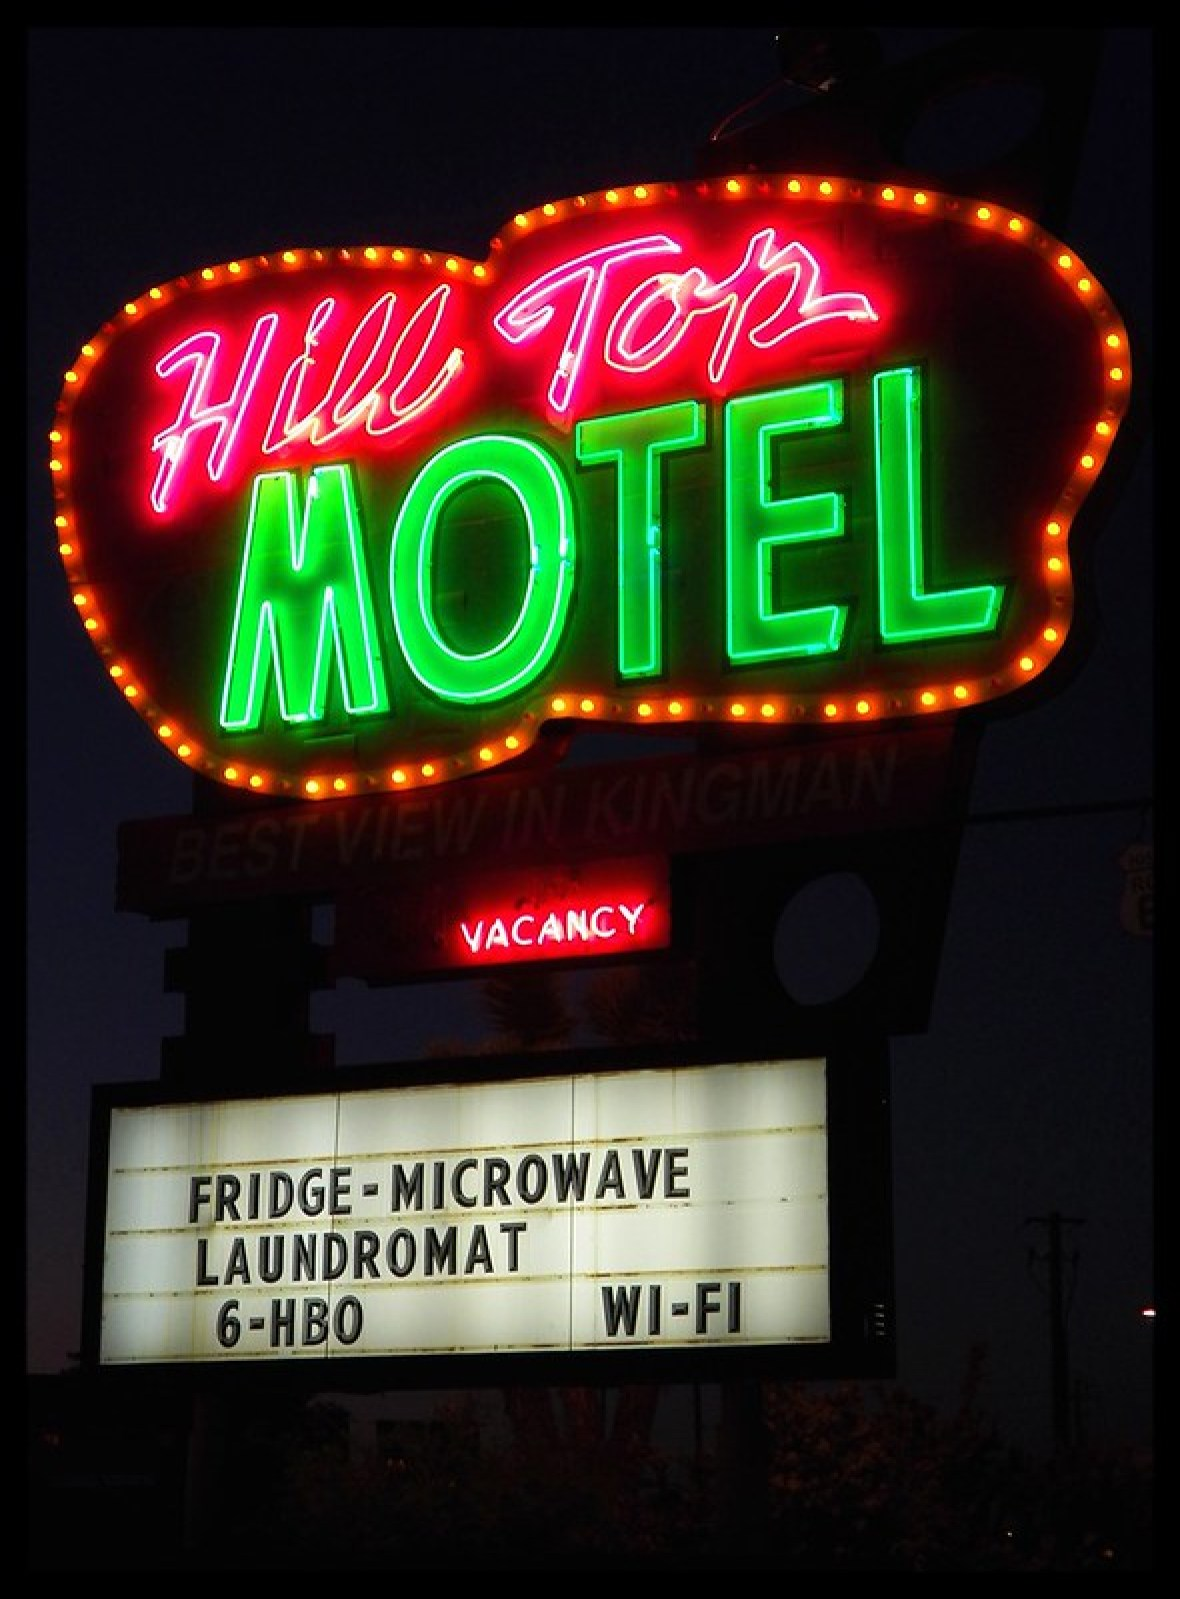 Hill Top Motel - 1901 East Andy Devine Avenue, Kingman, Arizona U.S.A. - August 22, 2014